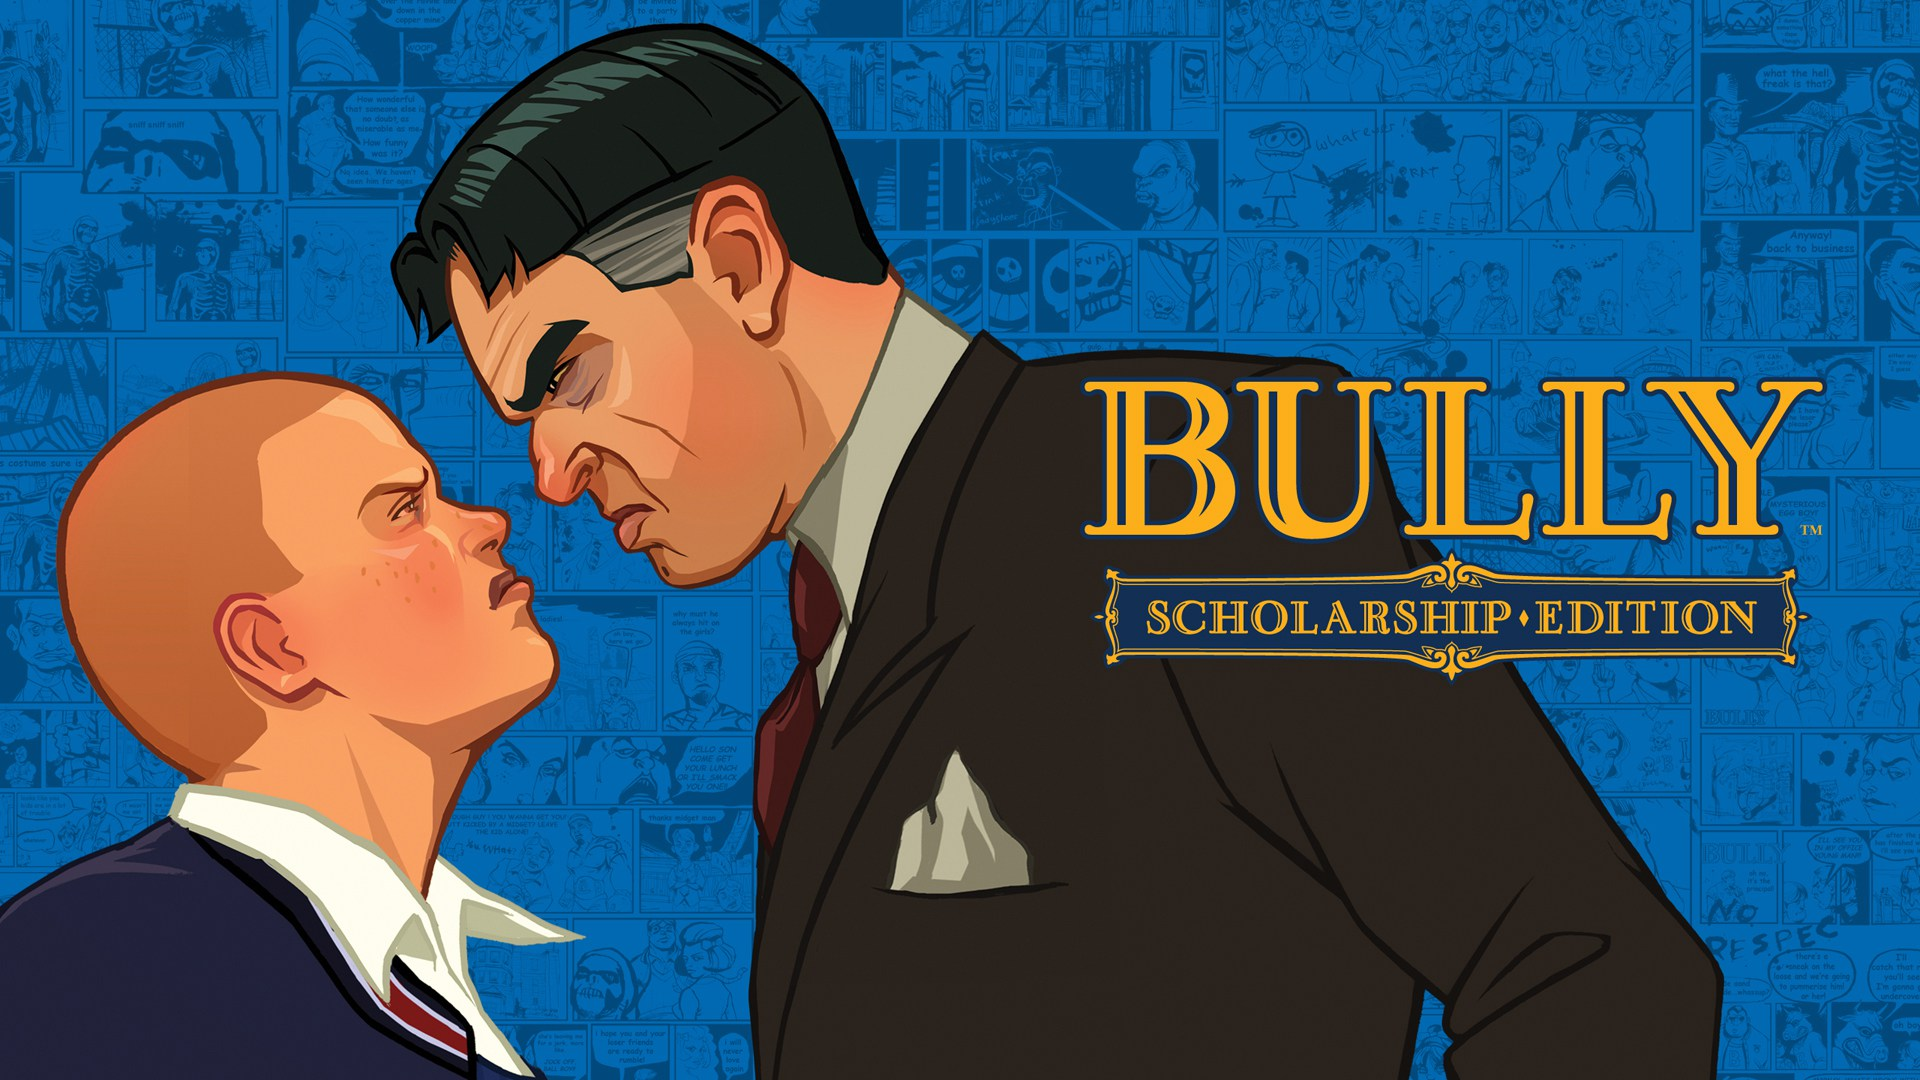 Rockstar bully scholarship edition poster affiche